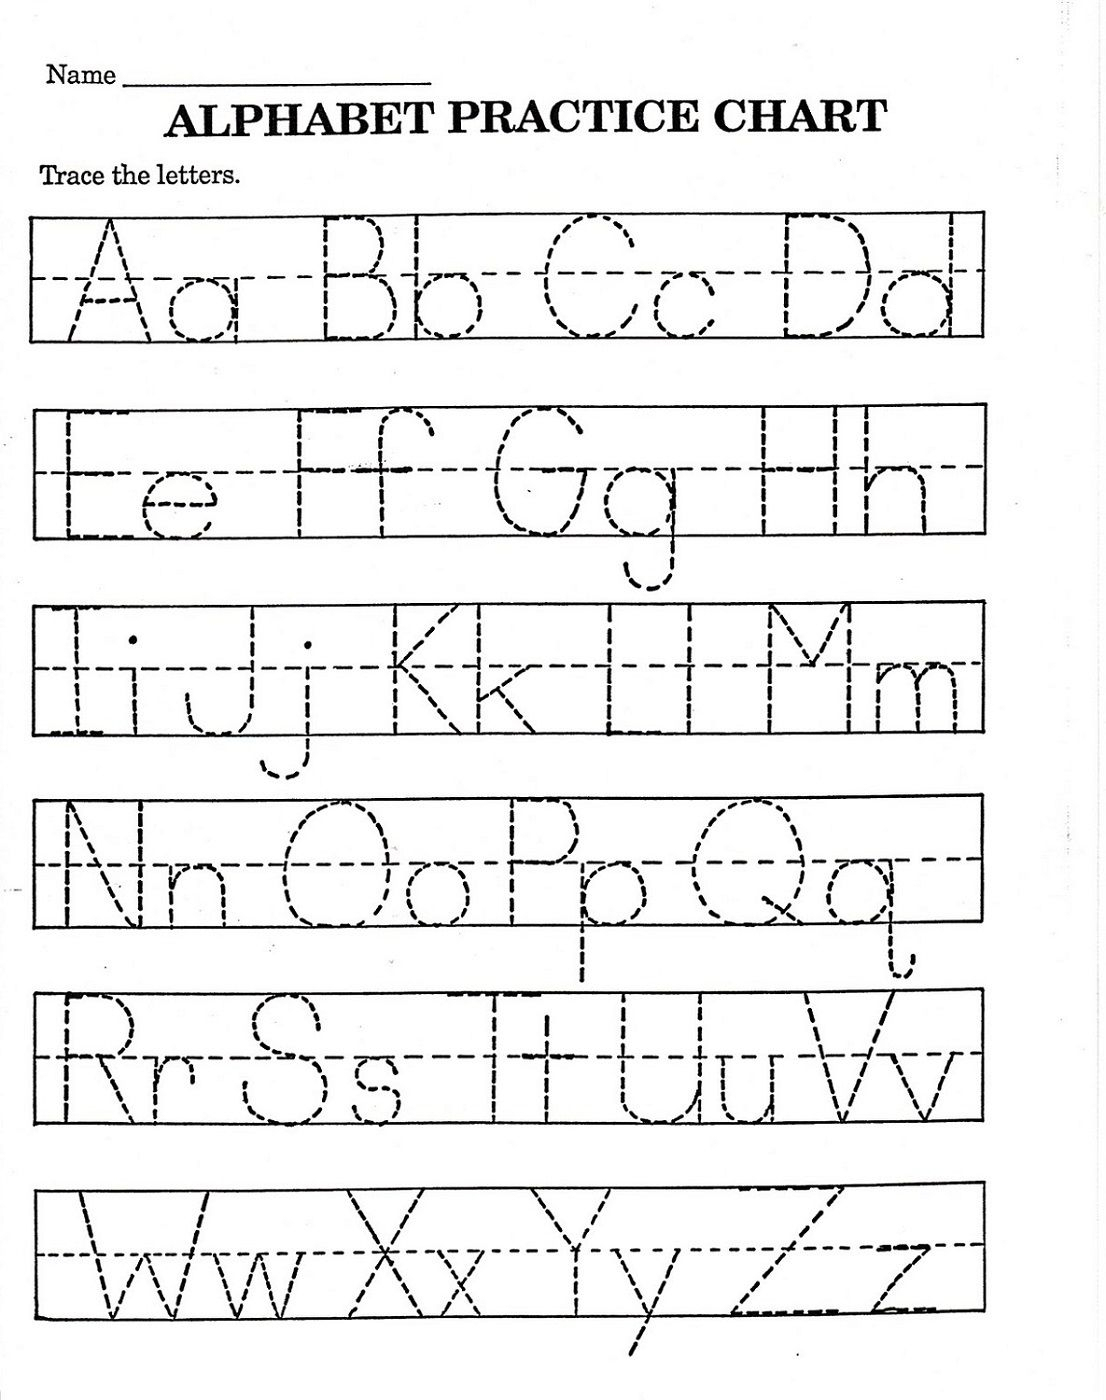 Free Printable Letter Worksheets For Preschoolers For You - Math - Free Printable Letter Worksheets